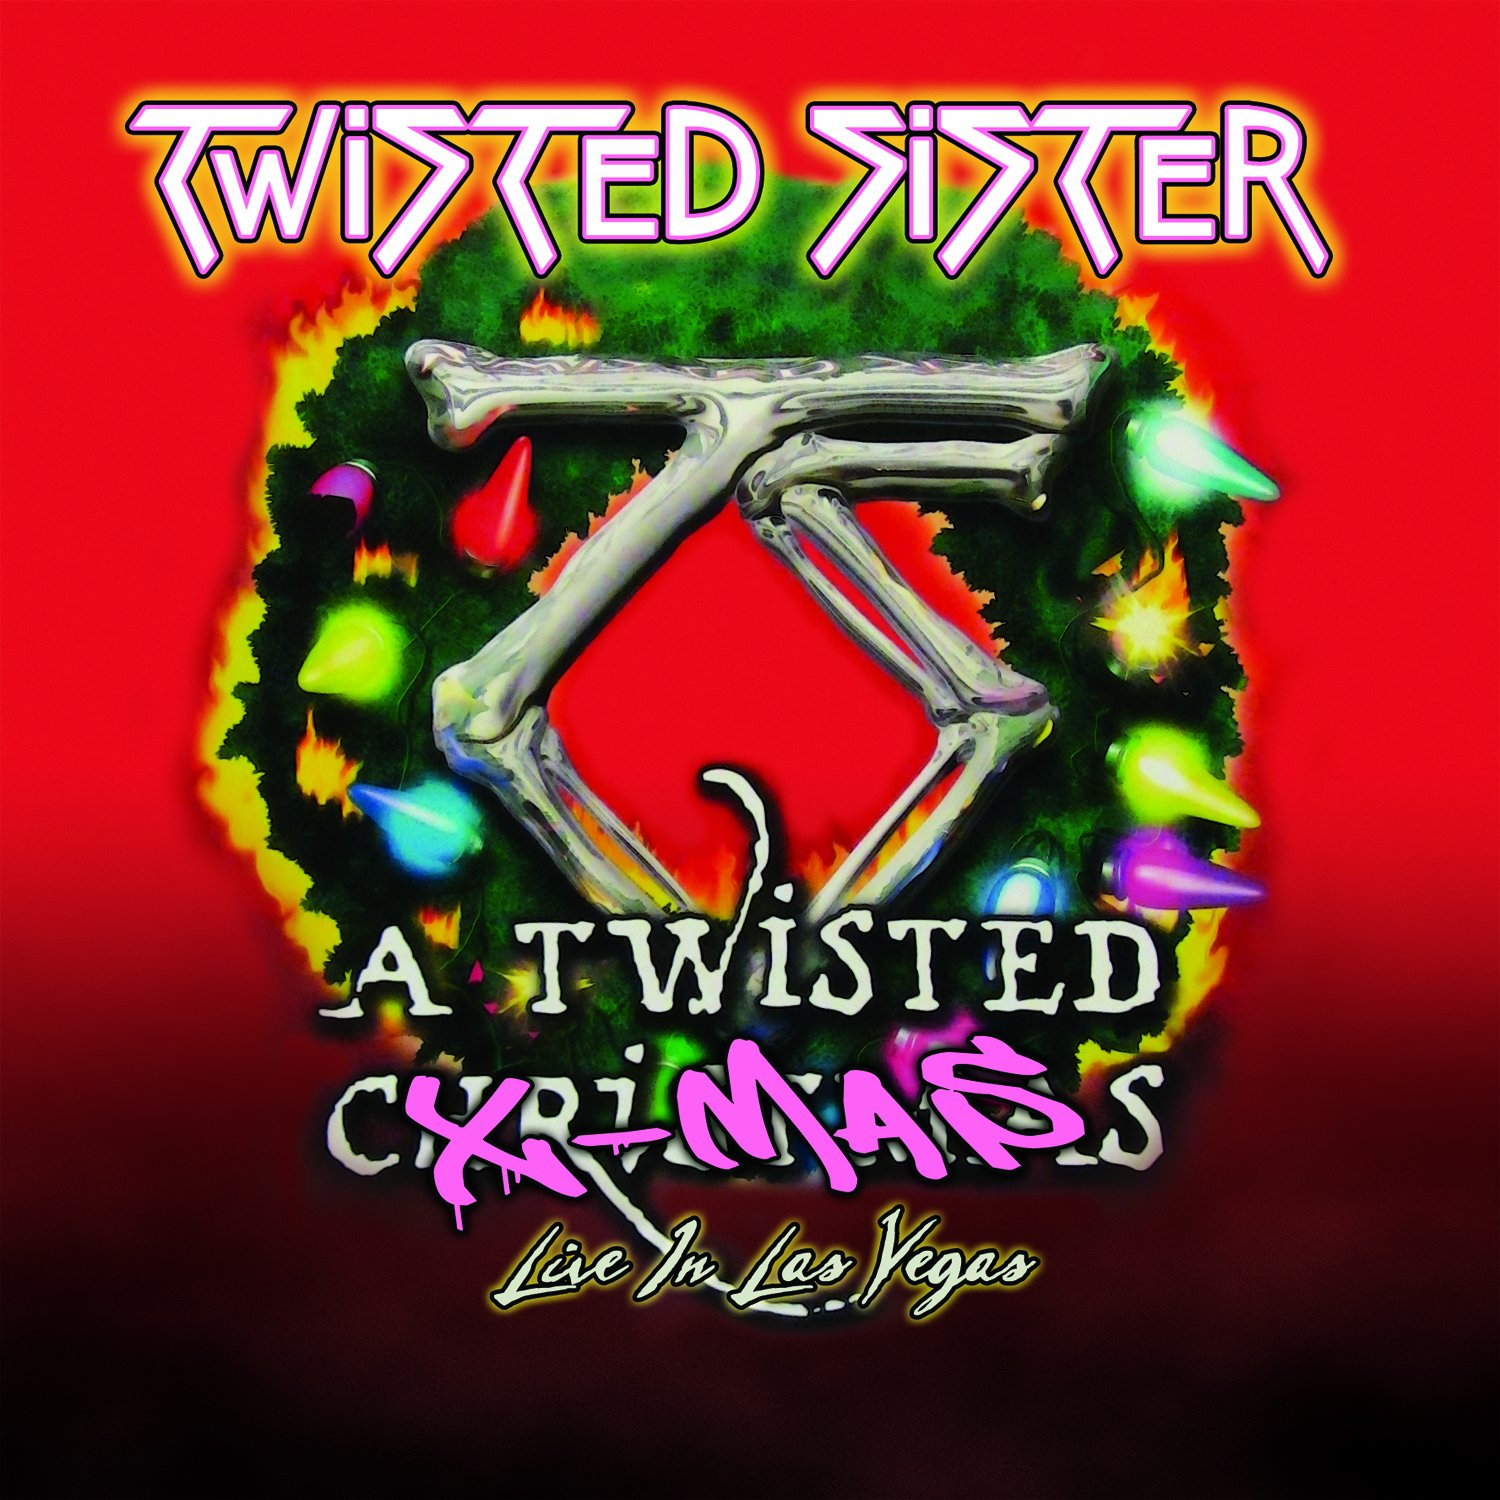 Twisted Sister - A Twisted Xmas - Live In Las Vegas - Amazon.com Music